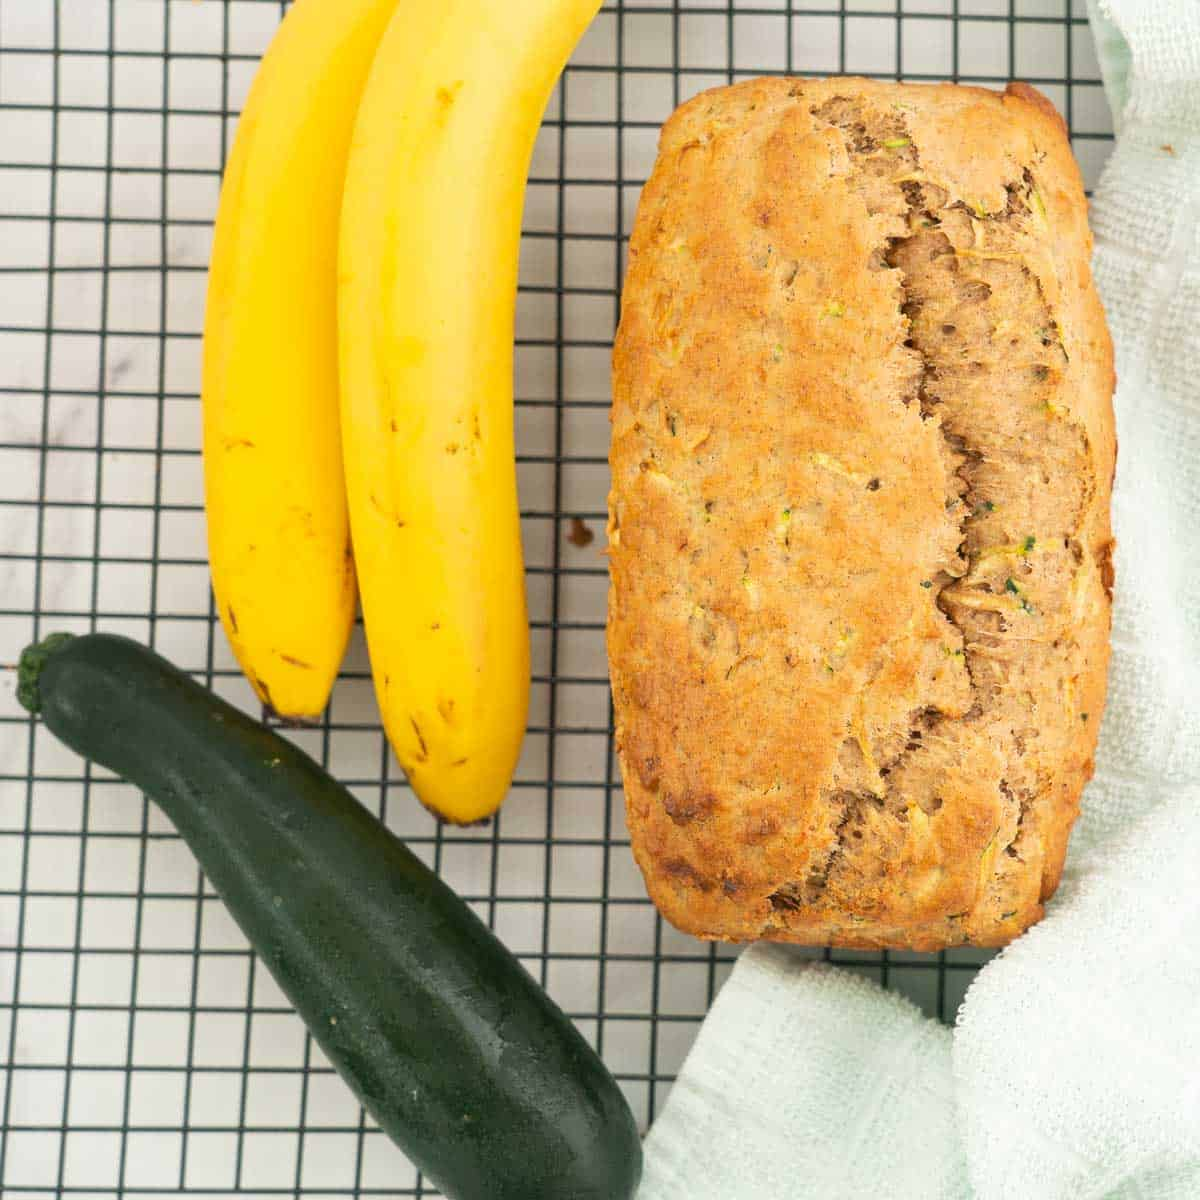 banana bread on a cooling rack with 2 bananas and a zucchini